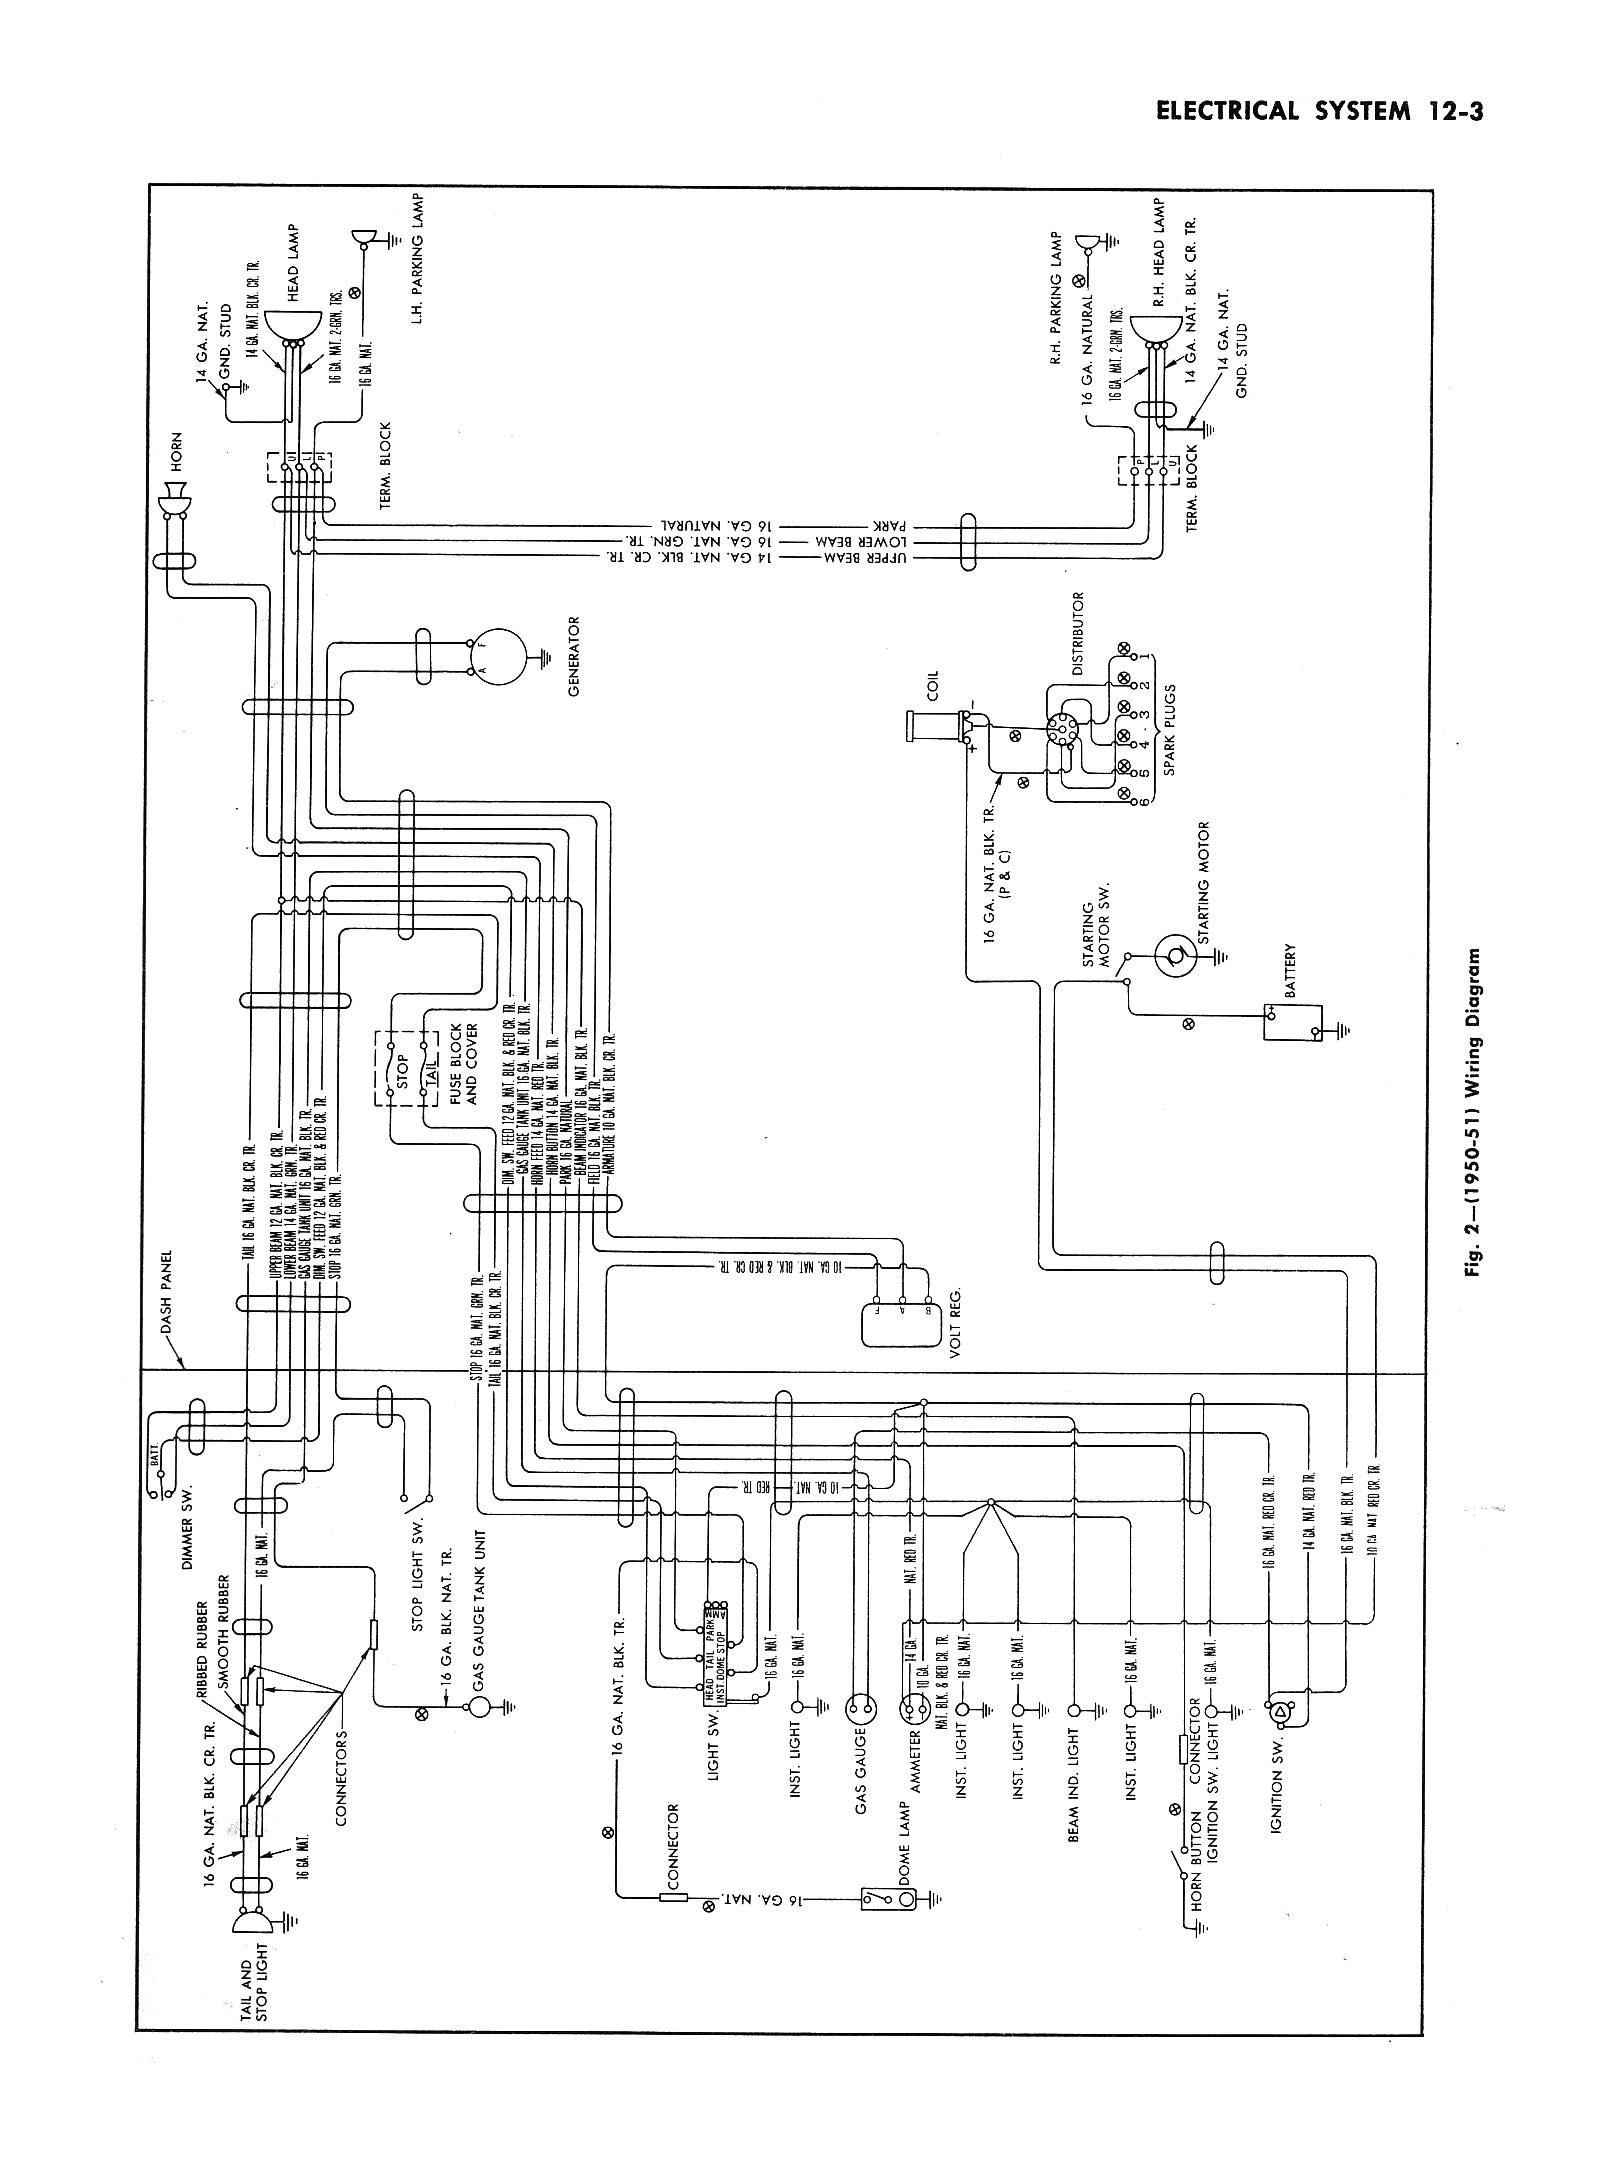 Race Car Wiring Diagram My Simple Of A Unusual Drag Ideas